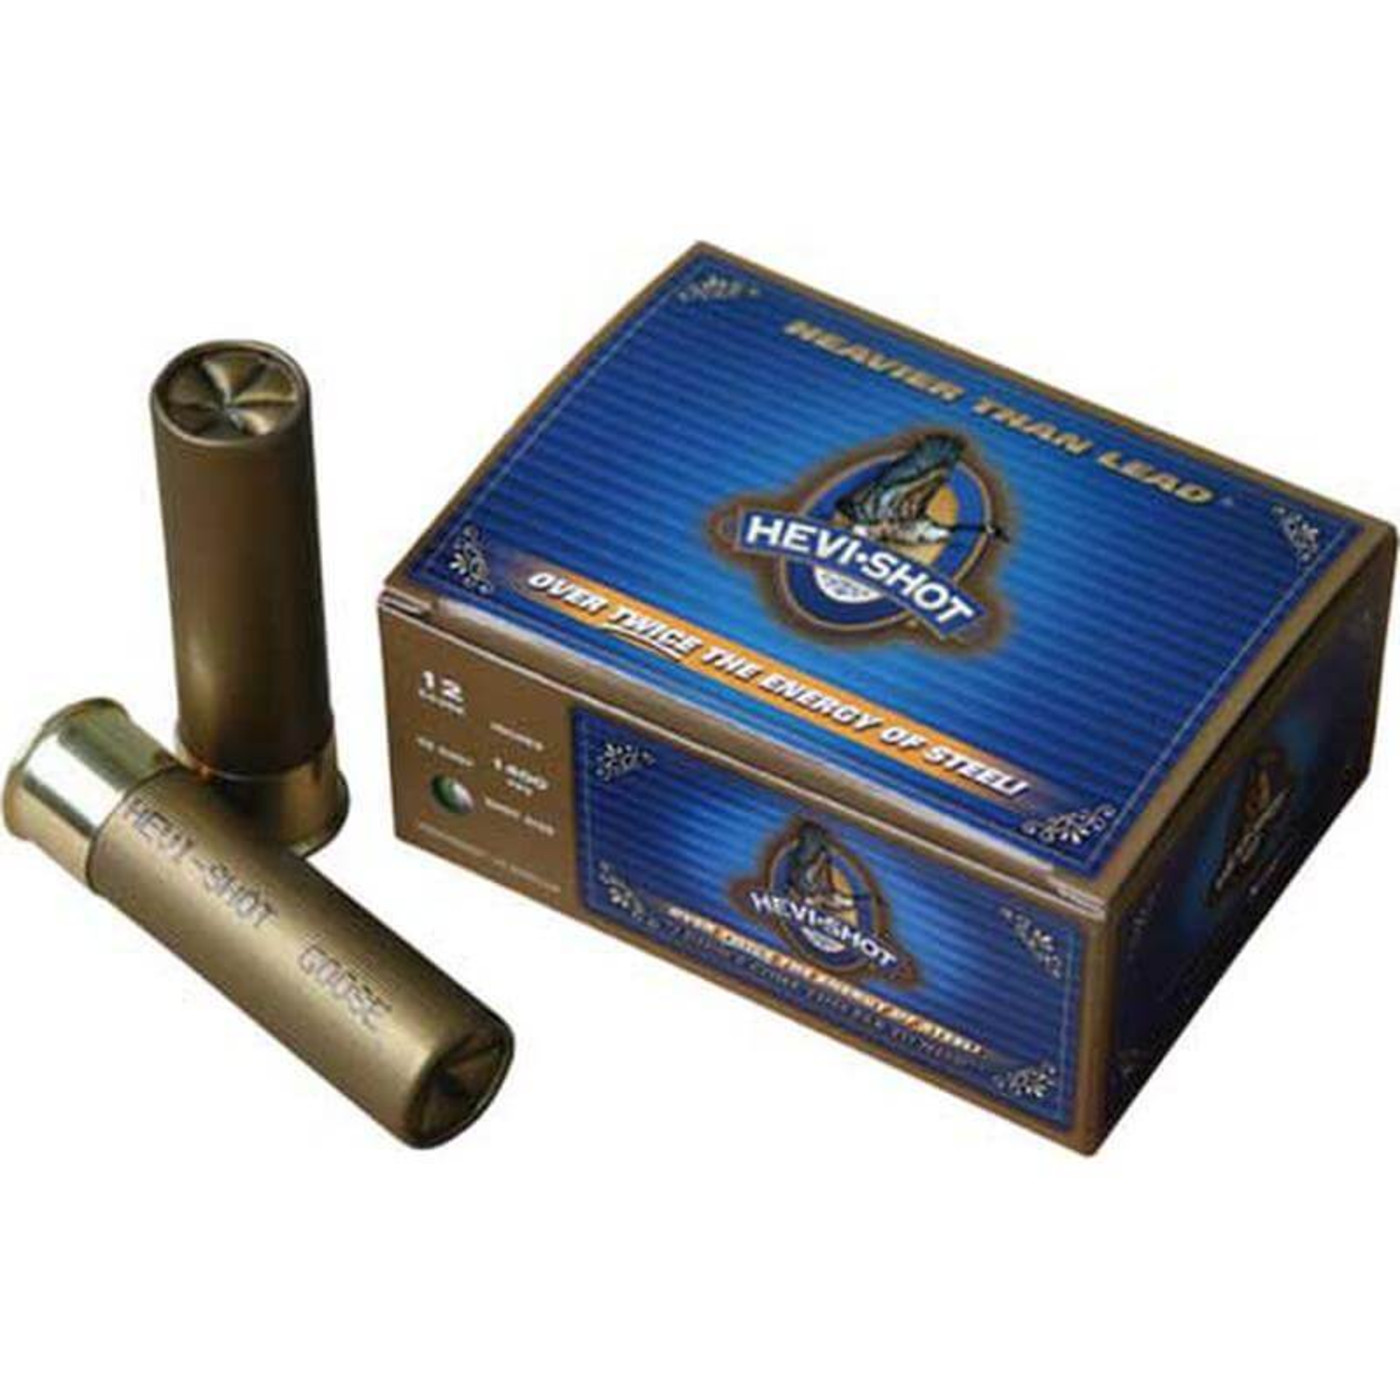 "Hevi Shot Goose 12 Ga 3"" 1-1/2 Oz - Case"